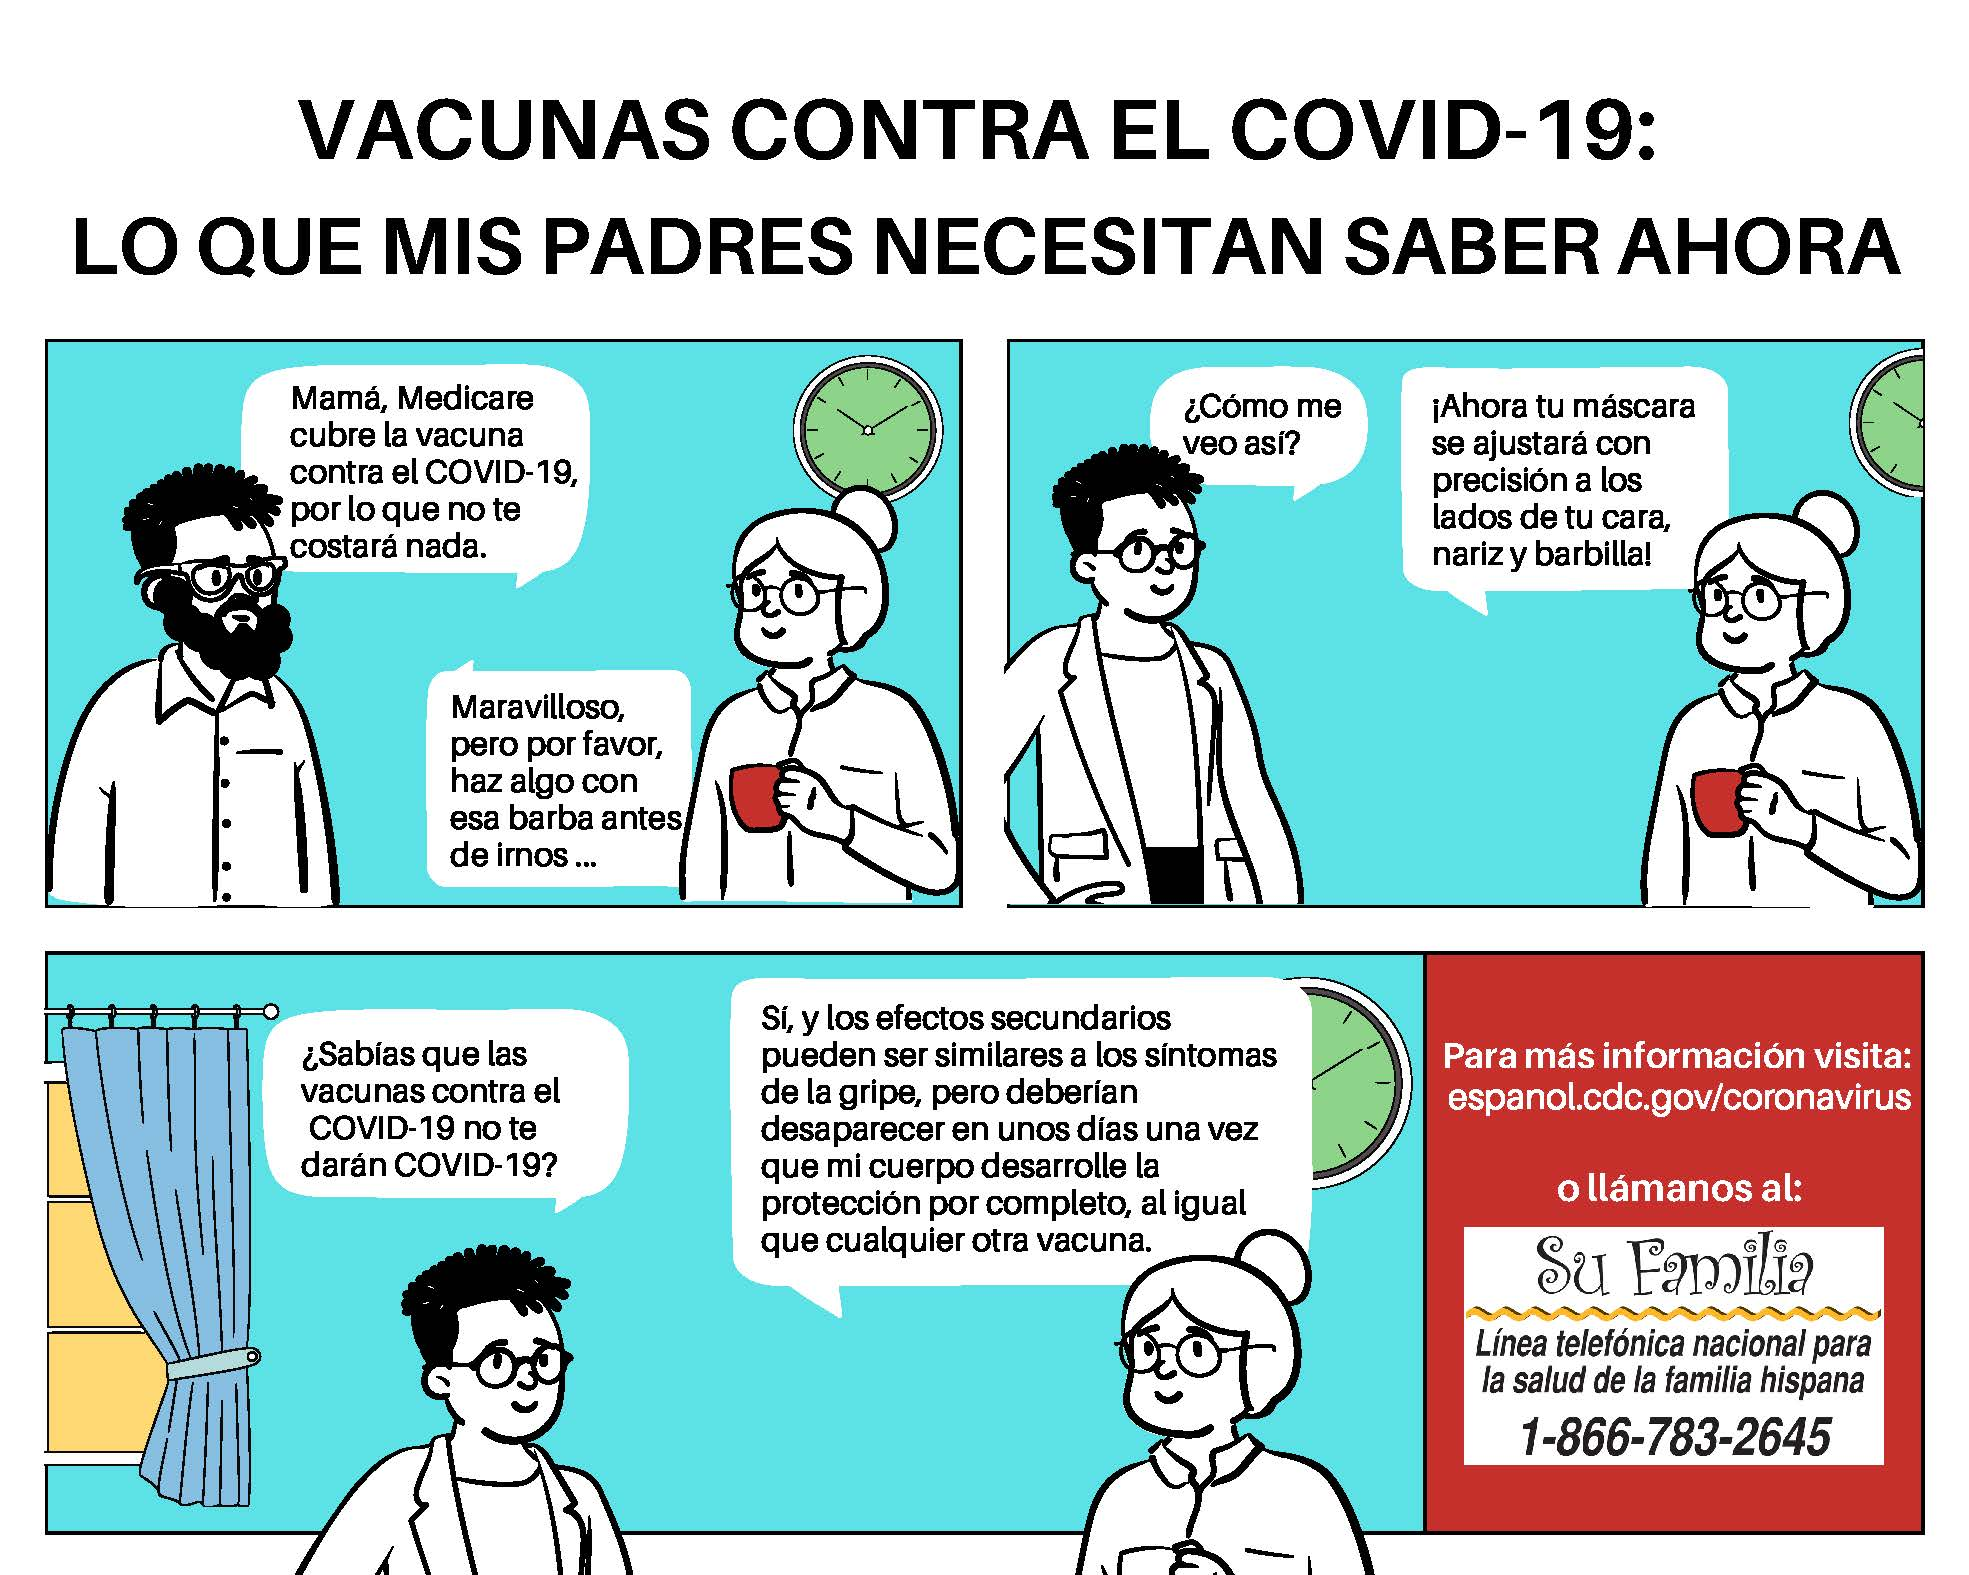 what my parents should know about COVID-19 vaccines - Latinos - Spanish via National Alliance for Hispanic Health